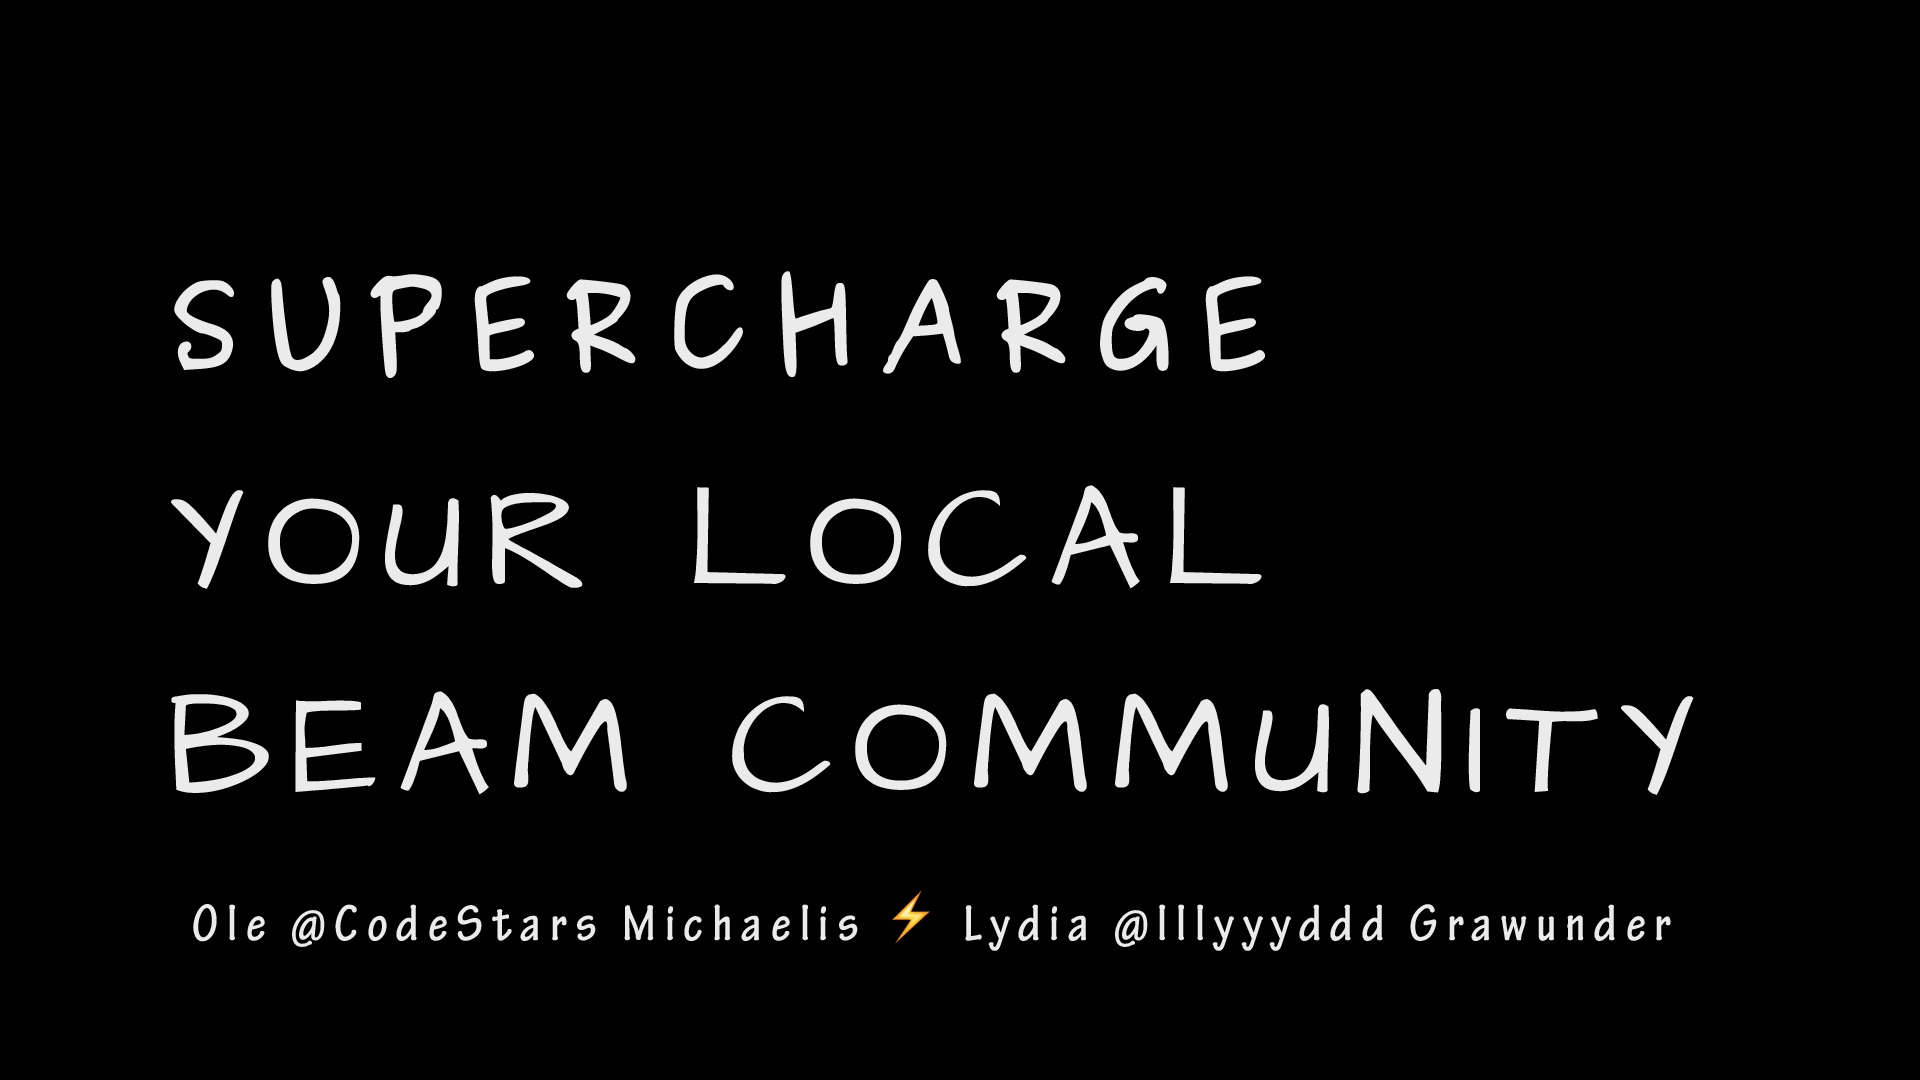 Supercharge your local BEAM Community